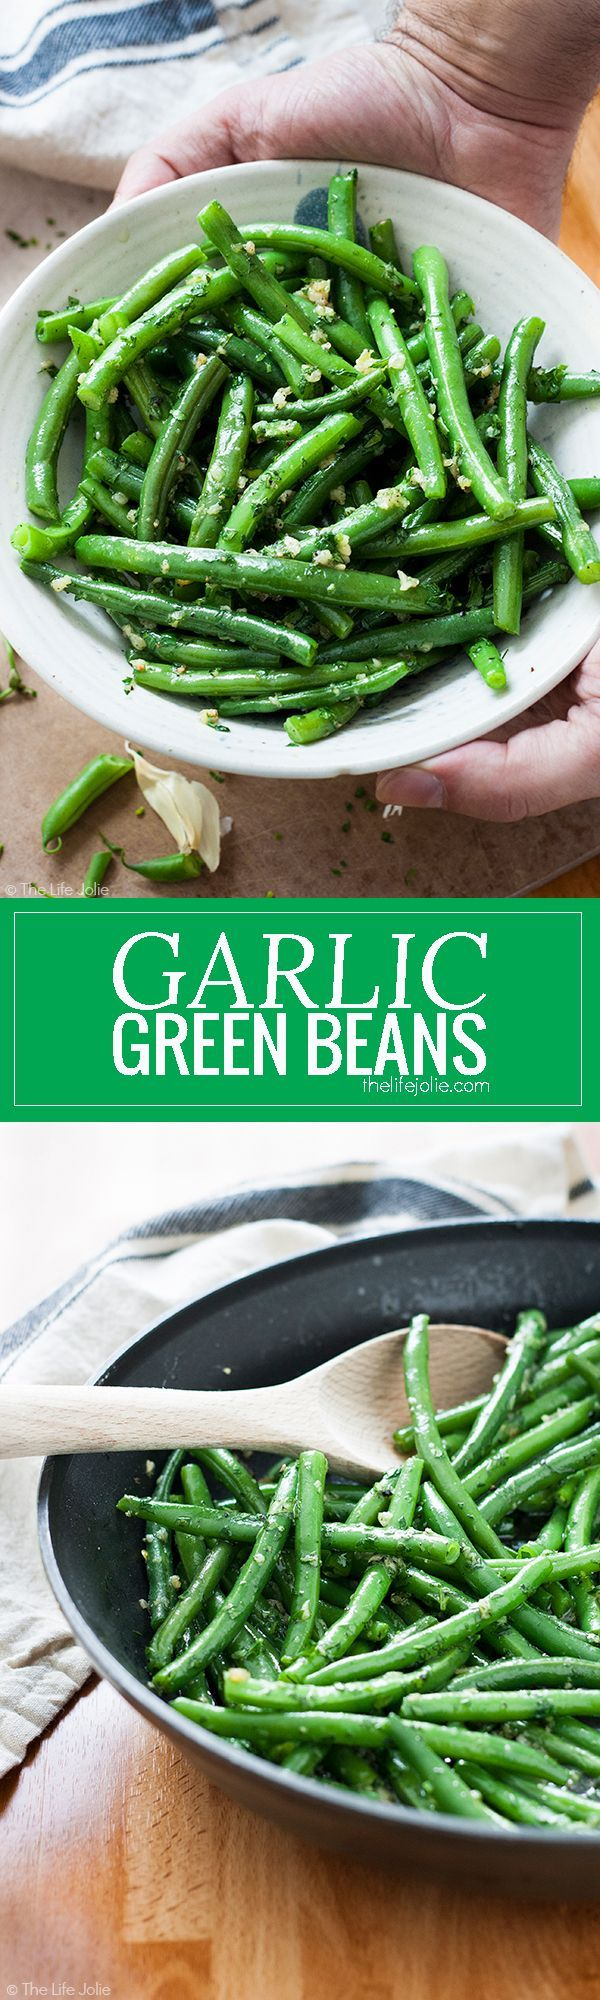 how to cook fresh green beans boil